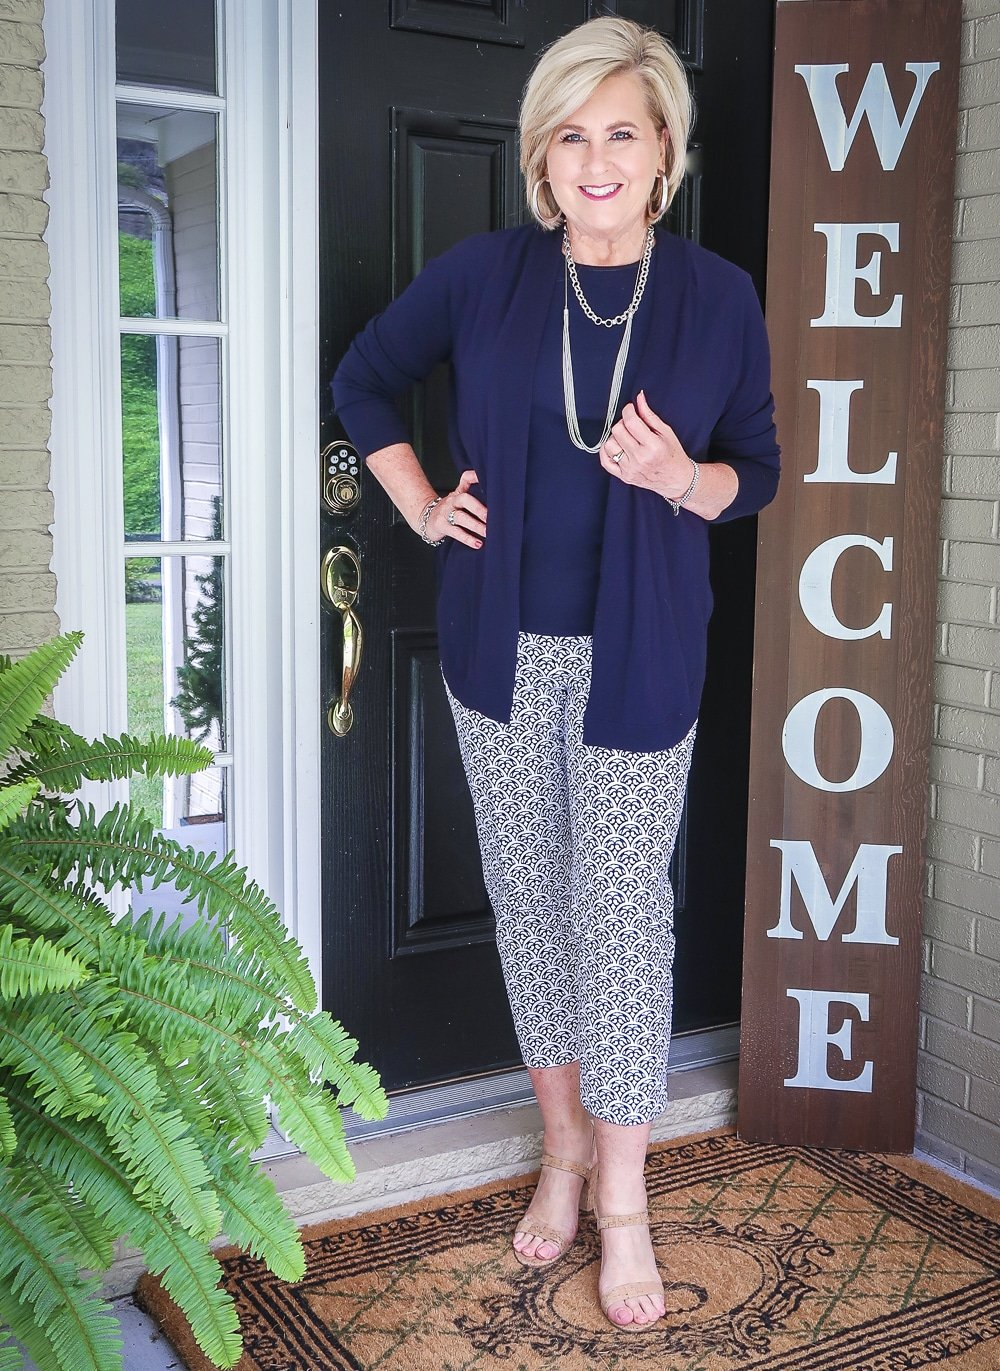 Fashion Blogger 50 Is Not Old is wearing a navy cardigan, a navy tank top, and blue and white ankle pants